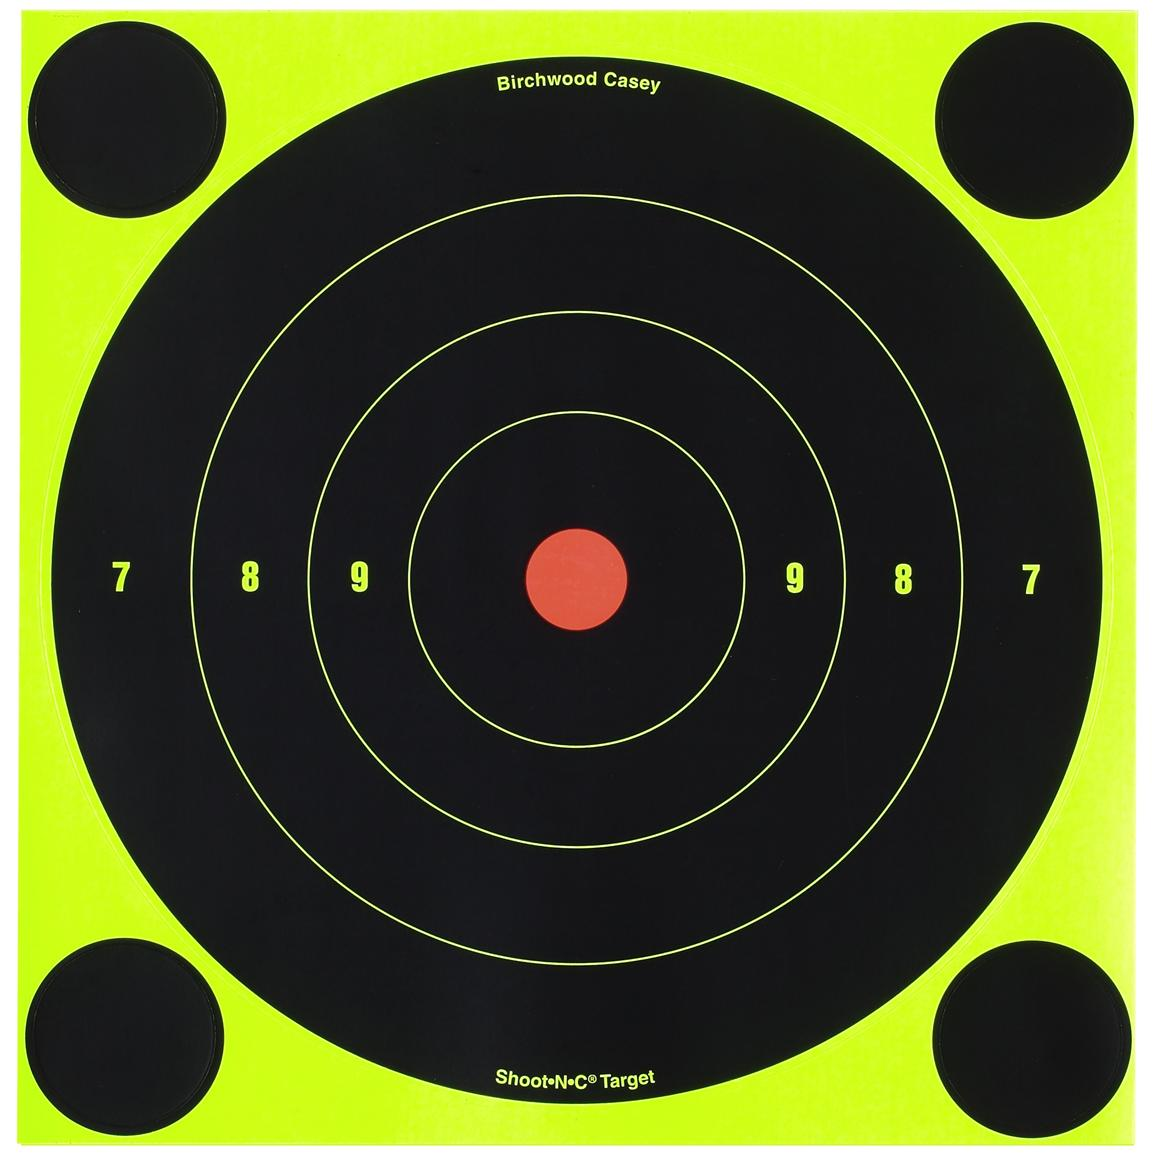 Birchwood Casey® Shoot-N-C® 8 inch Bull's Eye Target 500-Sheet Pack